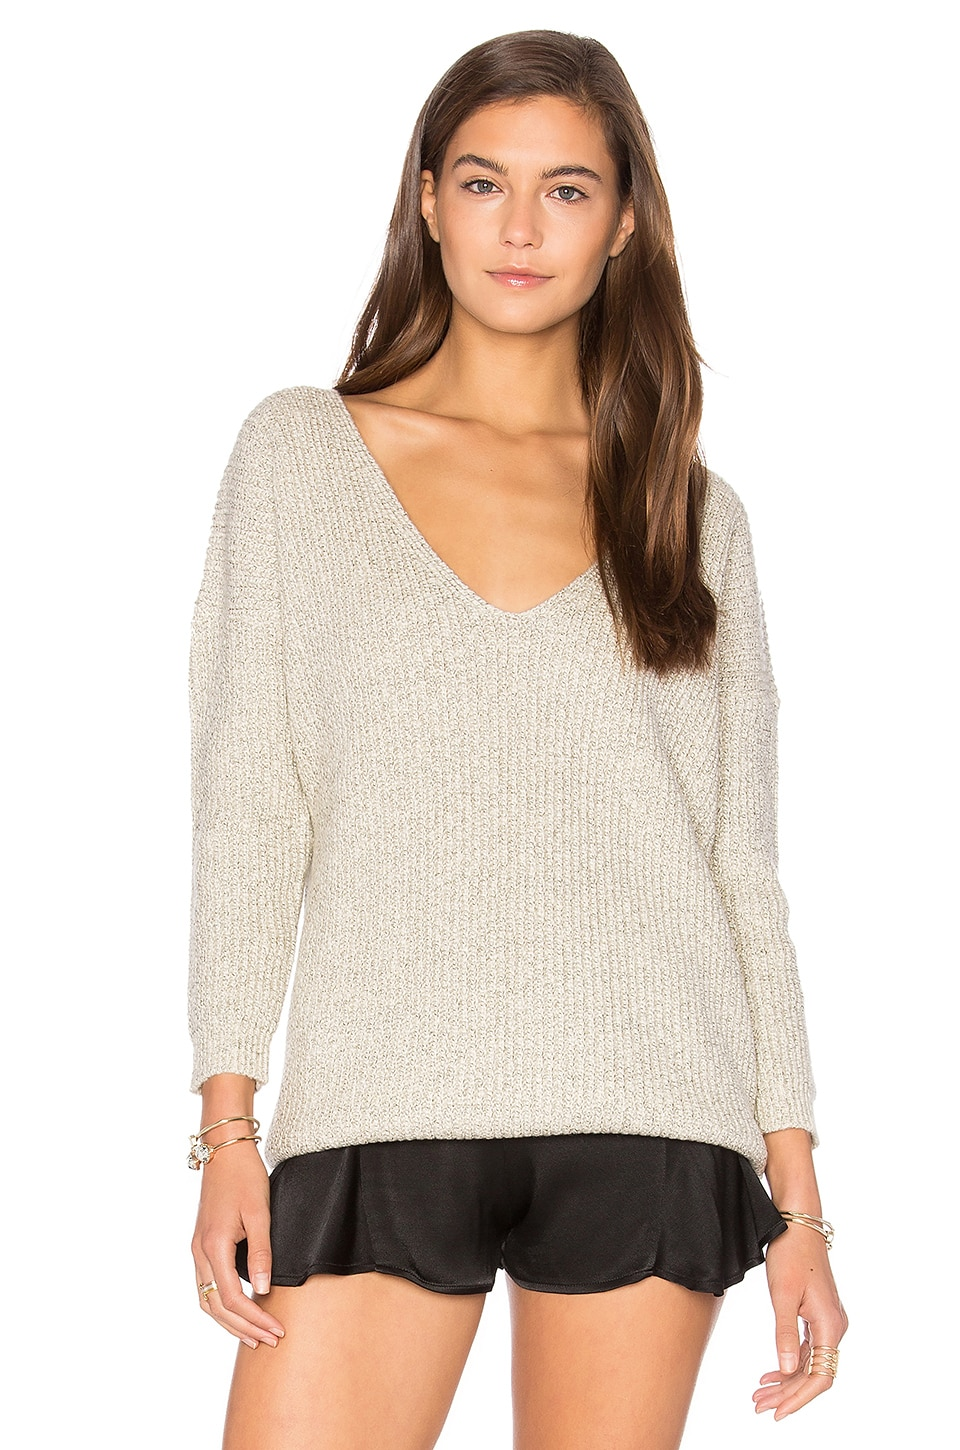 Callahan x REVOLVE Heathered V Neck Sweater in Heather Gray